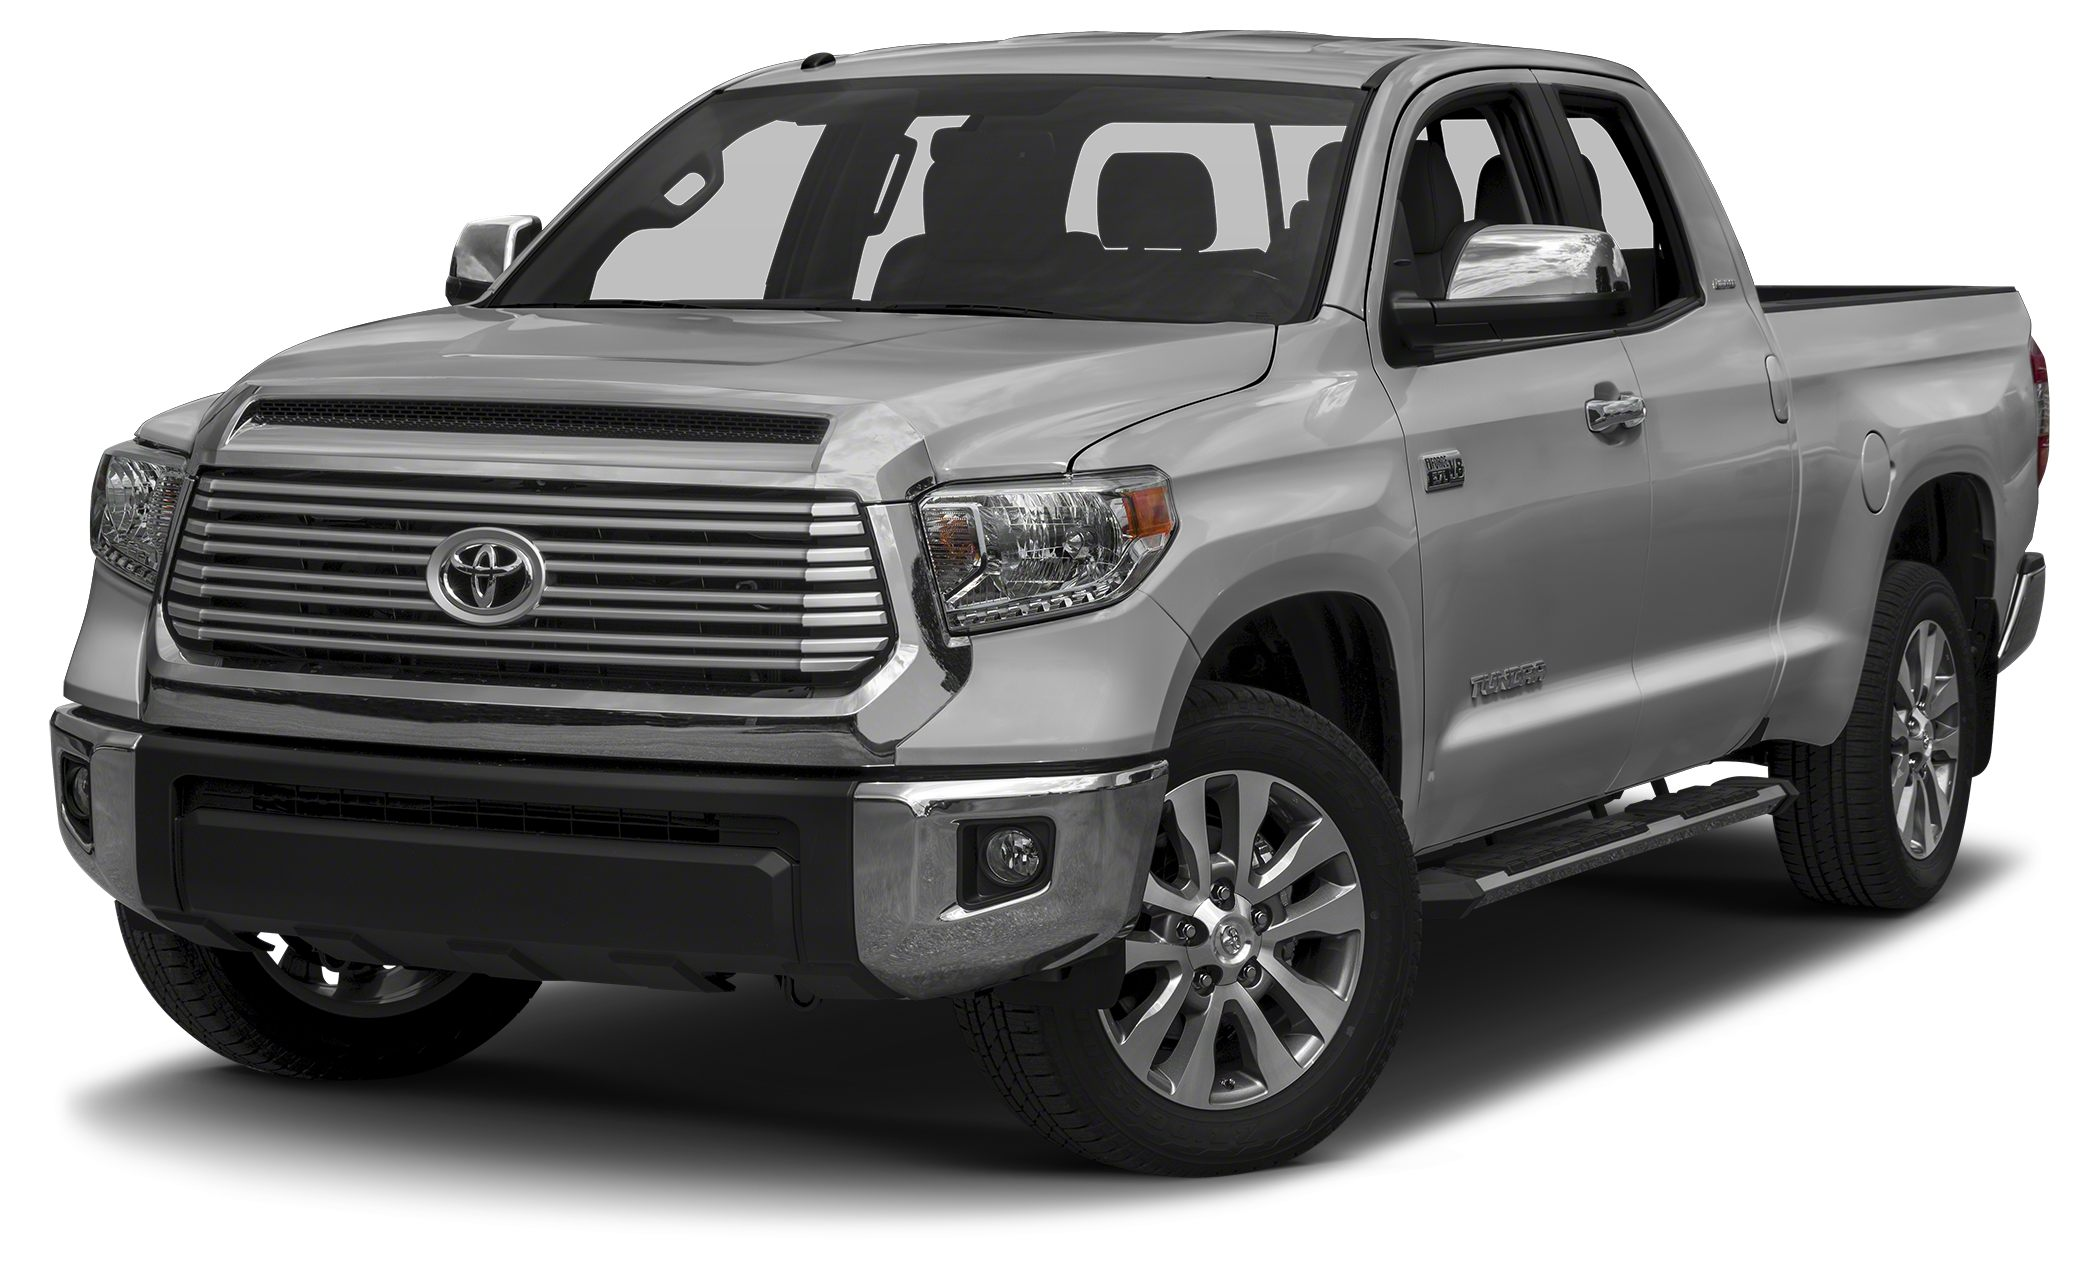 2016 Toyota Tundra Limited Westboro Toyota is proud to present HASSLE FREE BUYING EXPERIENCE with